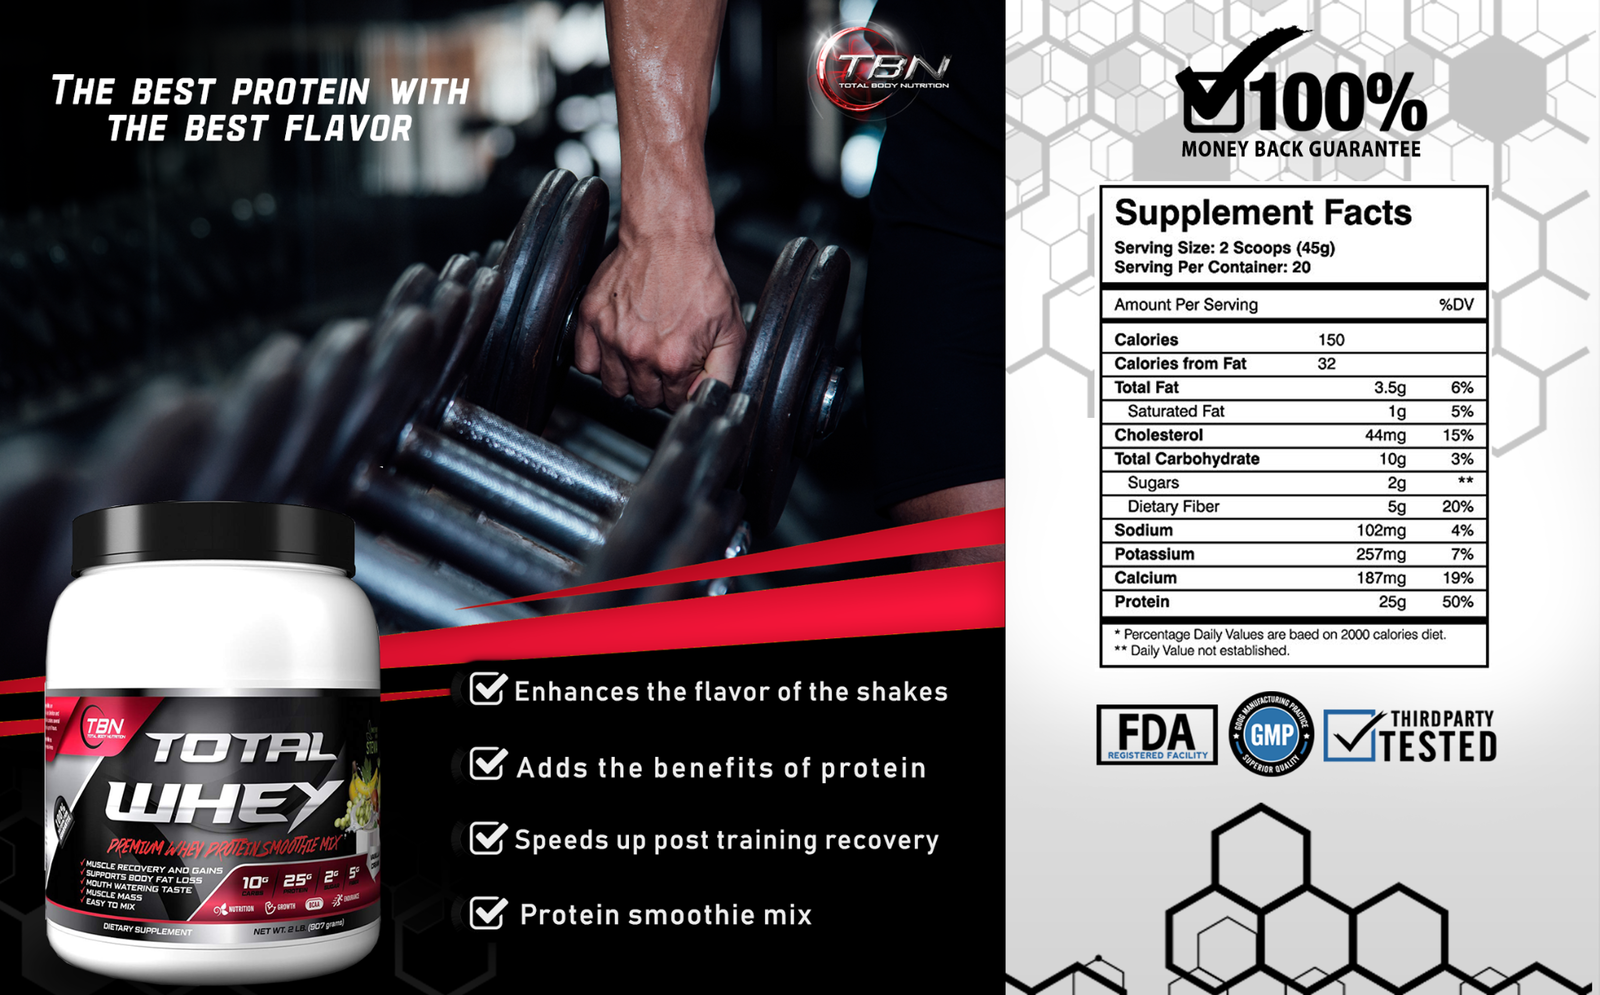 Whey Protein, Pure Whey, Protein Shakes- 2 Tubs@2lbs,20% OFF, FREE SHIPPING!!!  1